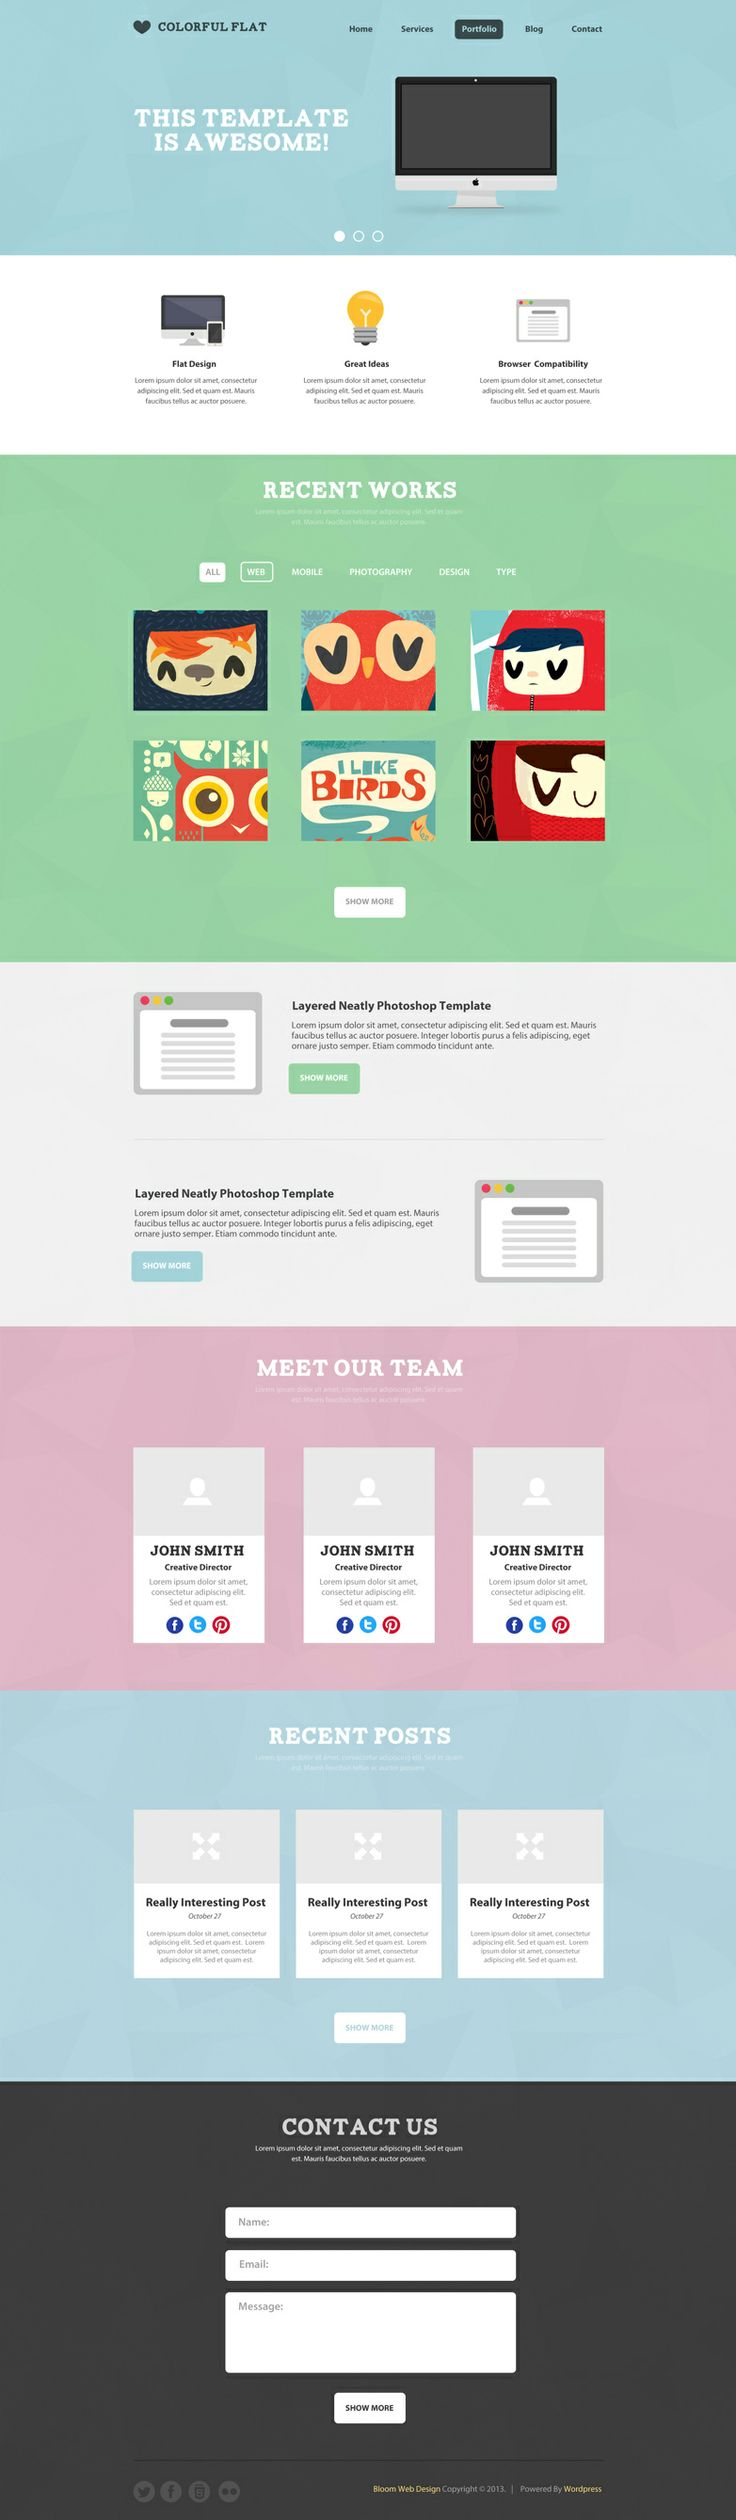 17 Best ideas about One Page Website on Pinterest | Website layout ...